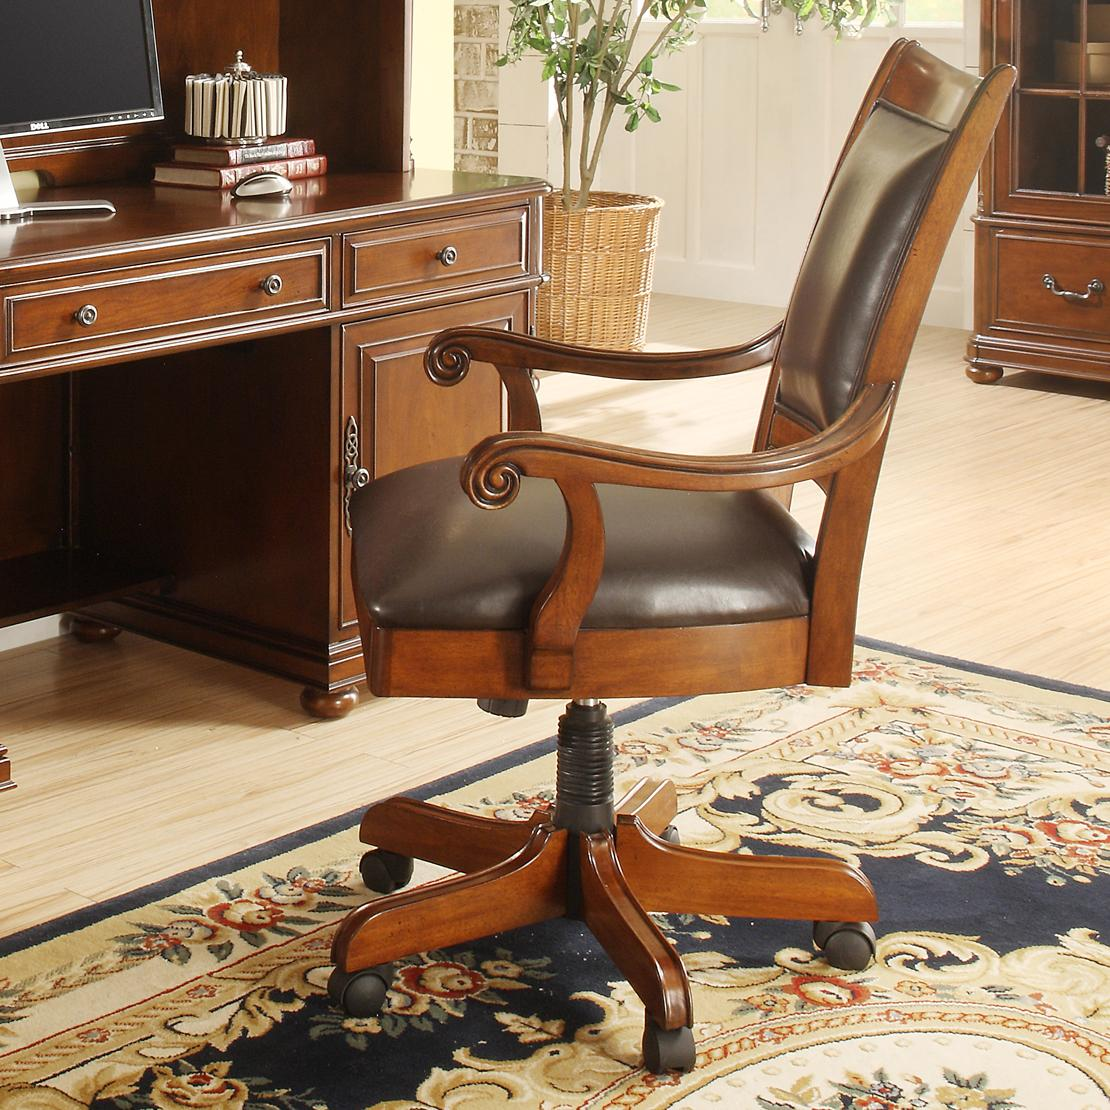 Caster Equipped Wooden Desk Chair with Leather Covered ...